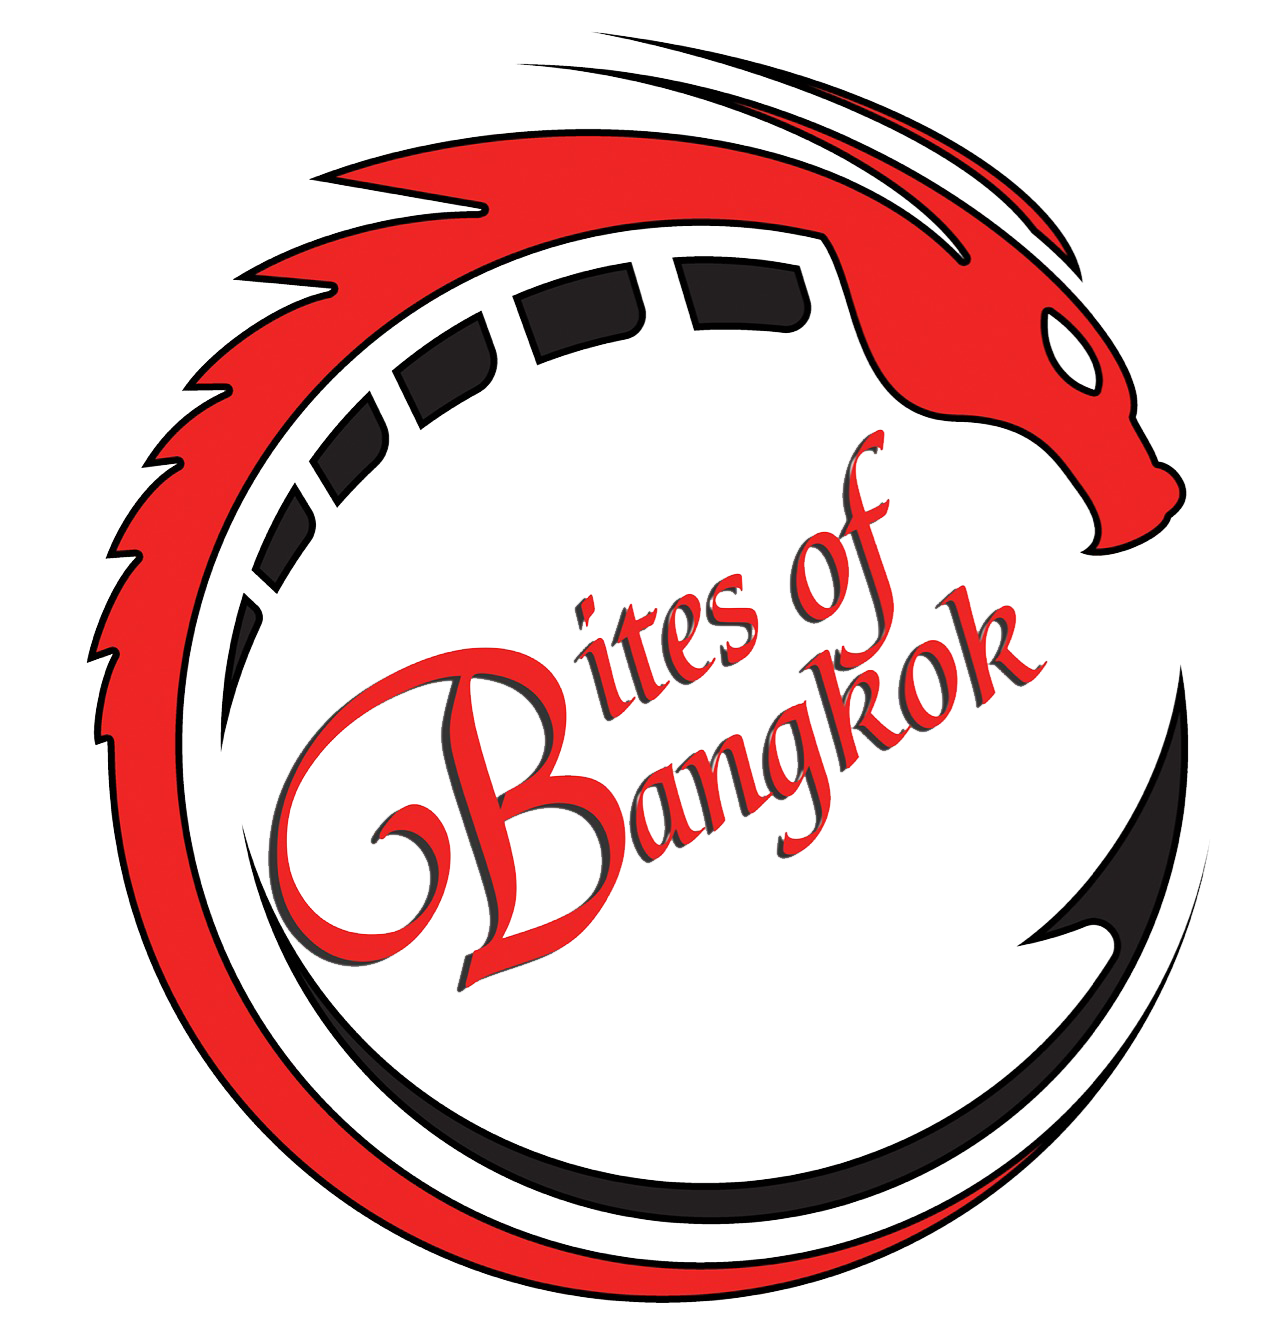 Bites of Bangkok